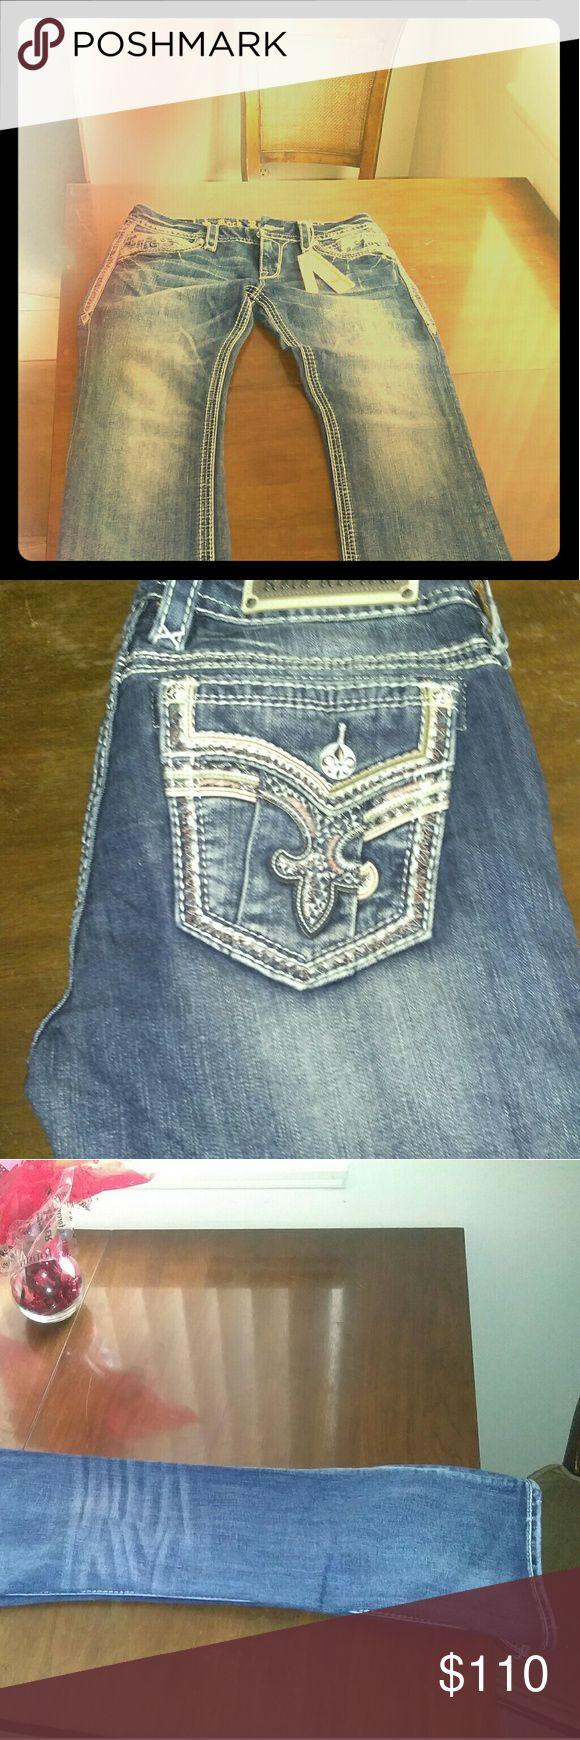 Rock revival Woman's jeans Brand new with tags size 31 these are called coe Rock Revival Jeans